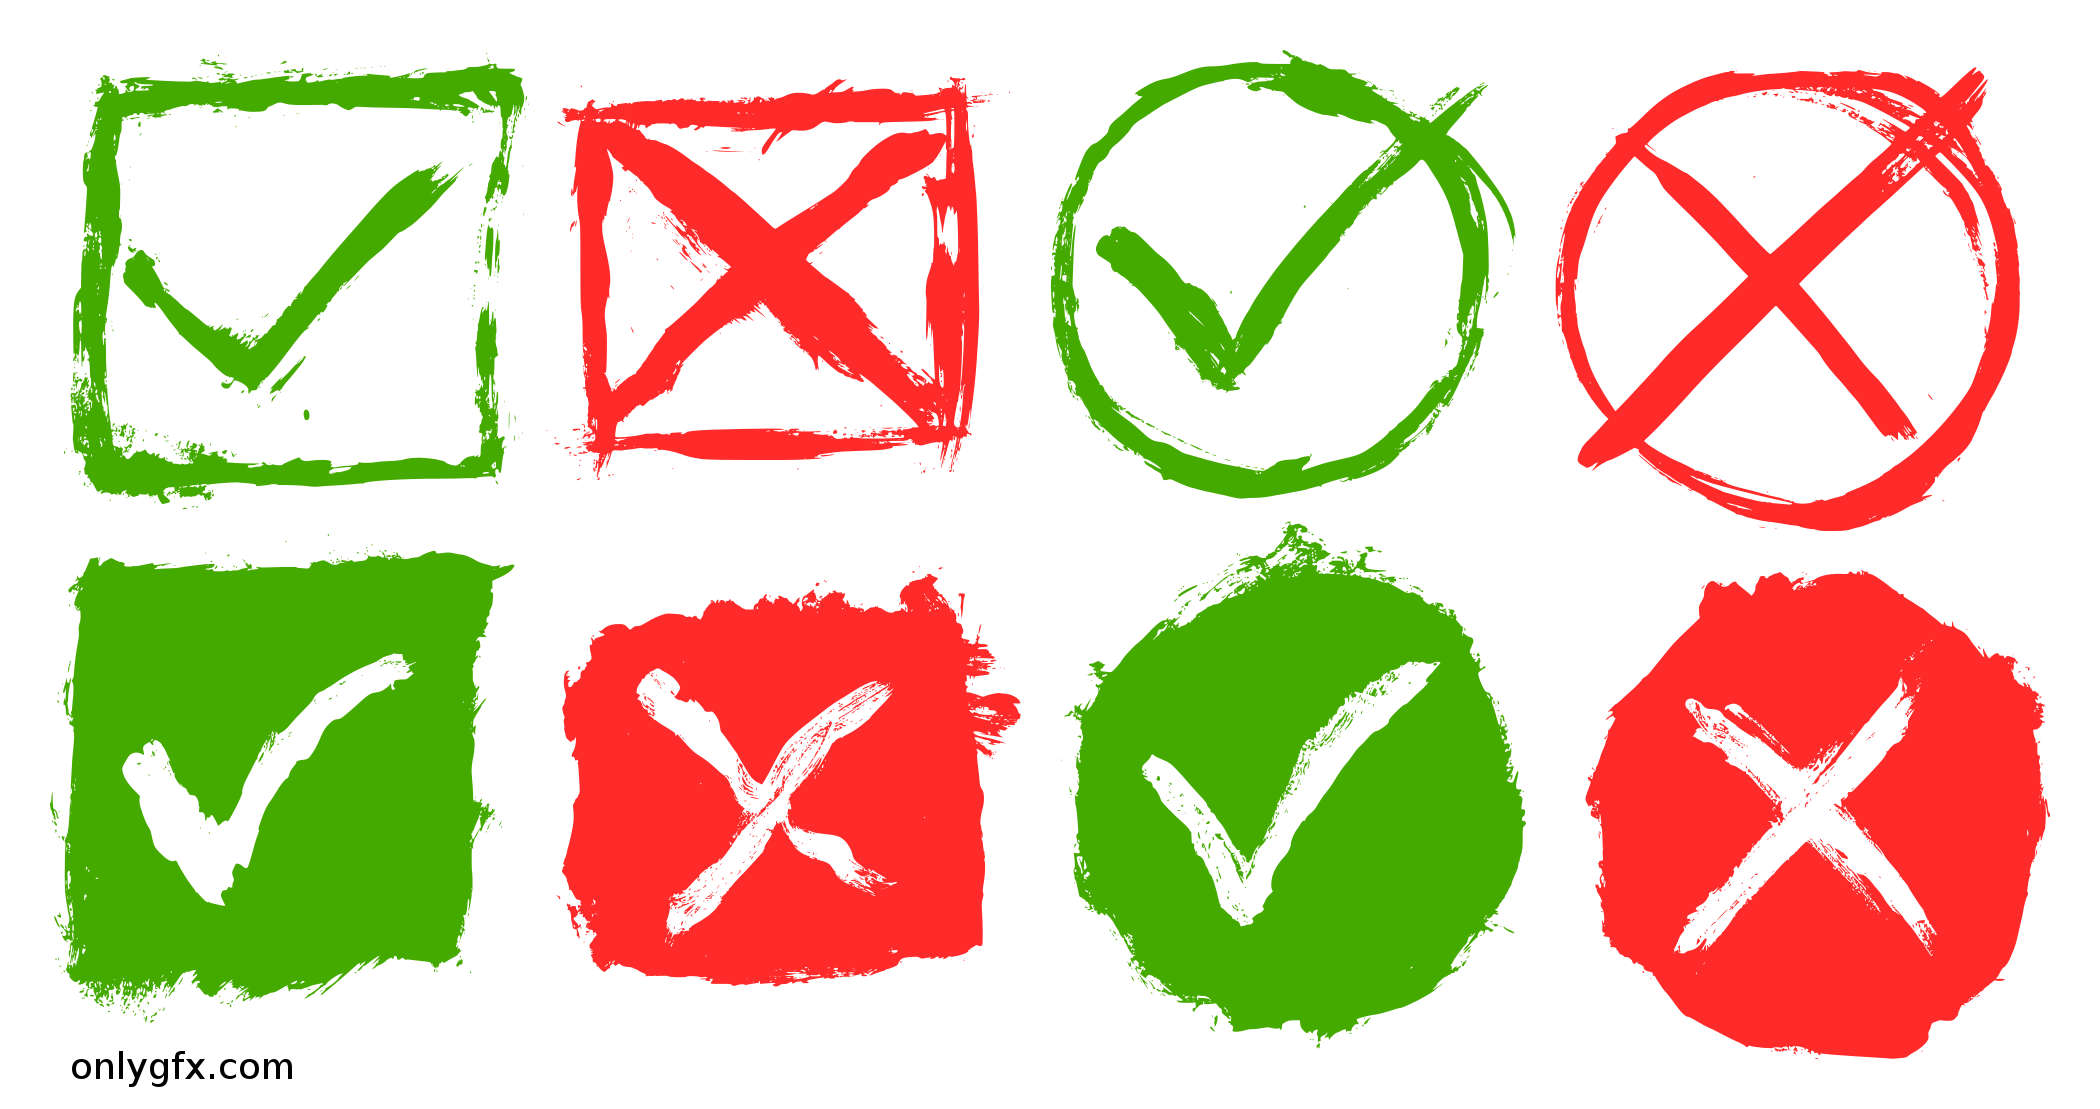 8 grunge yes no icon png transparent onlygfx 8 grunge yes no icon png transparent buycottarizona